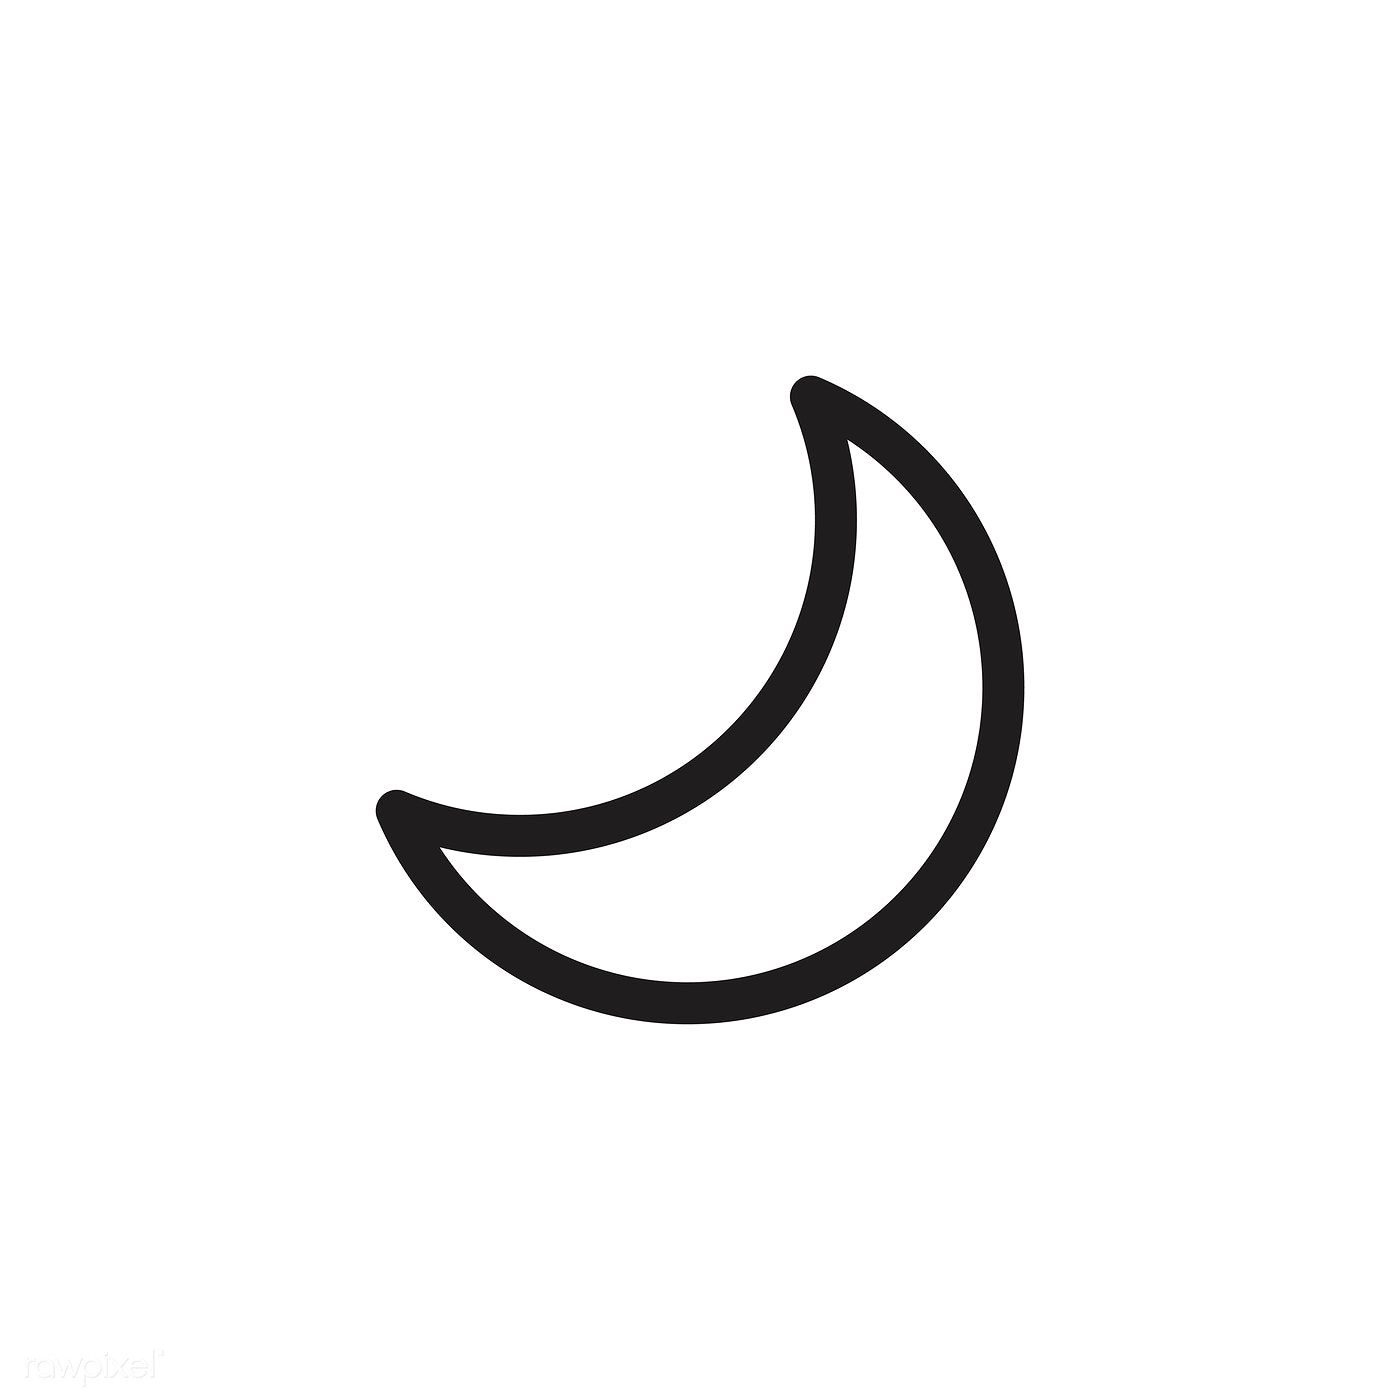 waxing crescent moon icon vector free image by rawpixel com in 2020 moon icon crescent moon art moon outline waxing crescent moon icon vector free